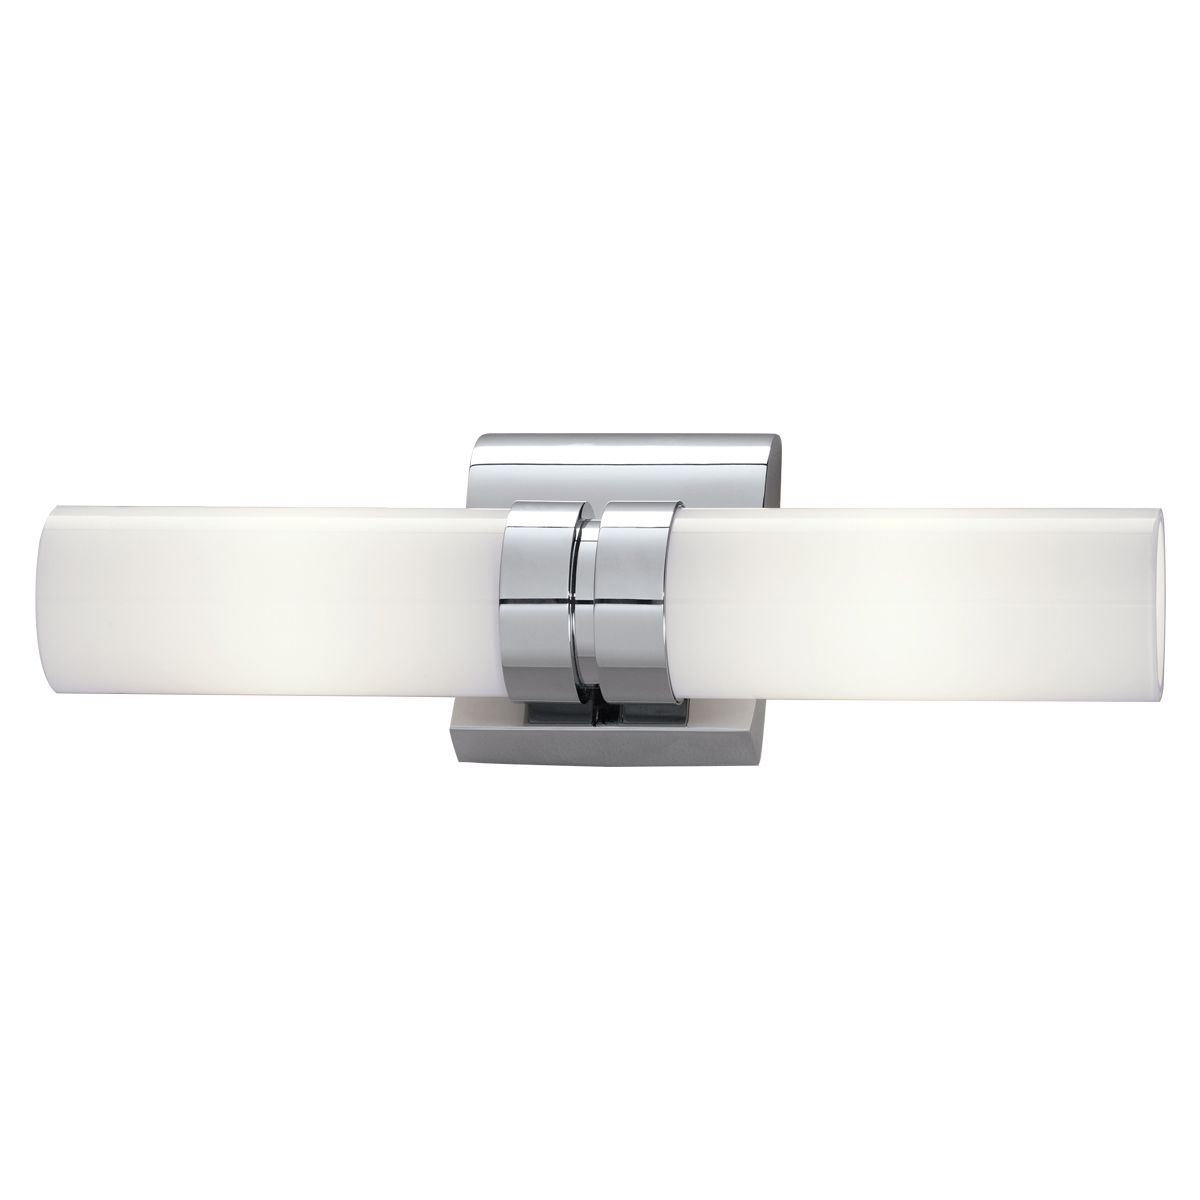 Bathroom light bar 28 images click to view larger for Z gallerie bathroom lights